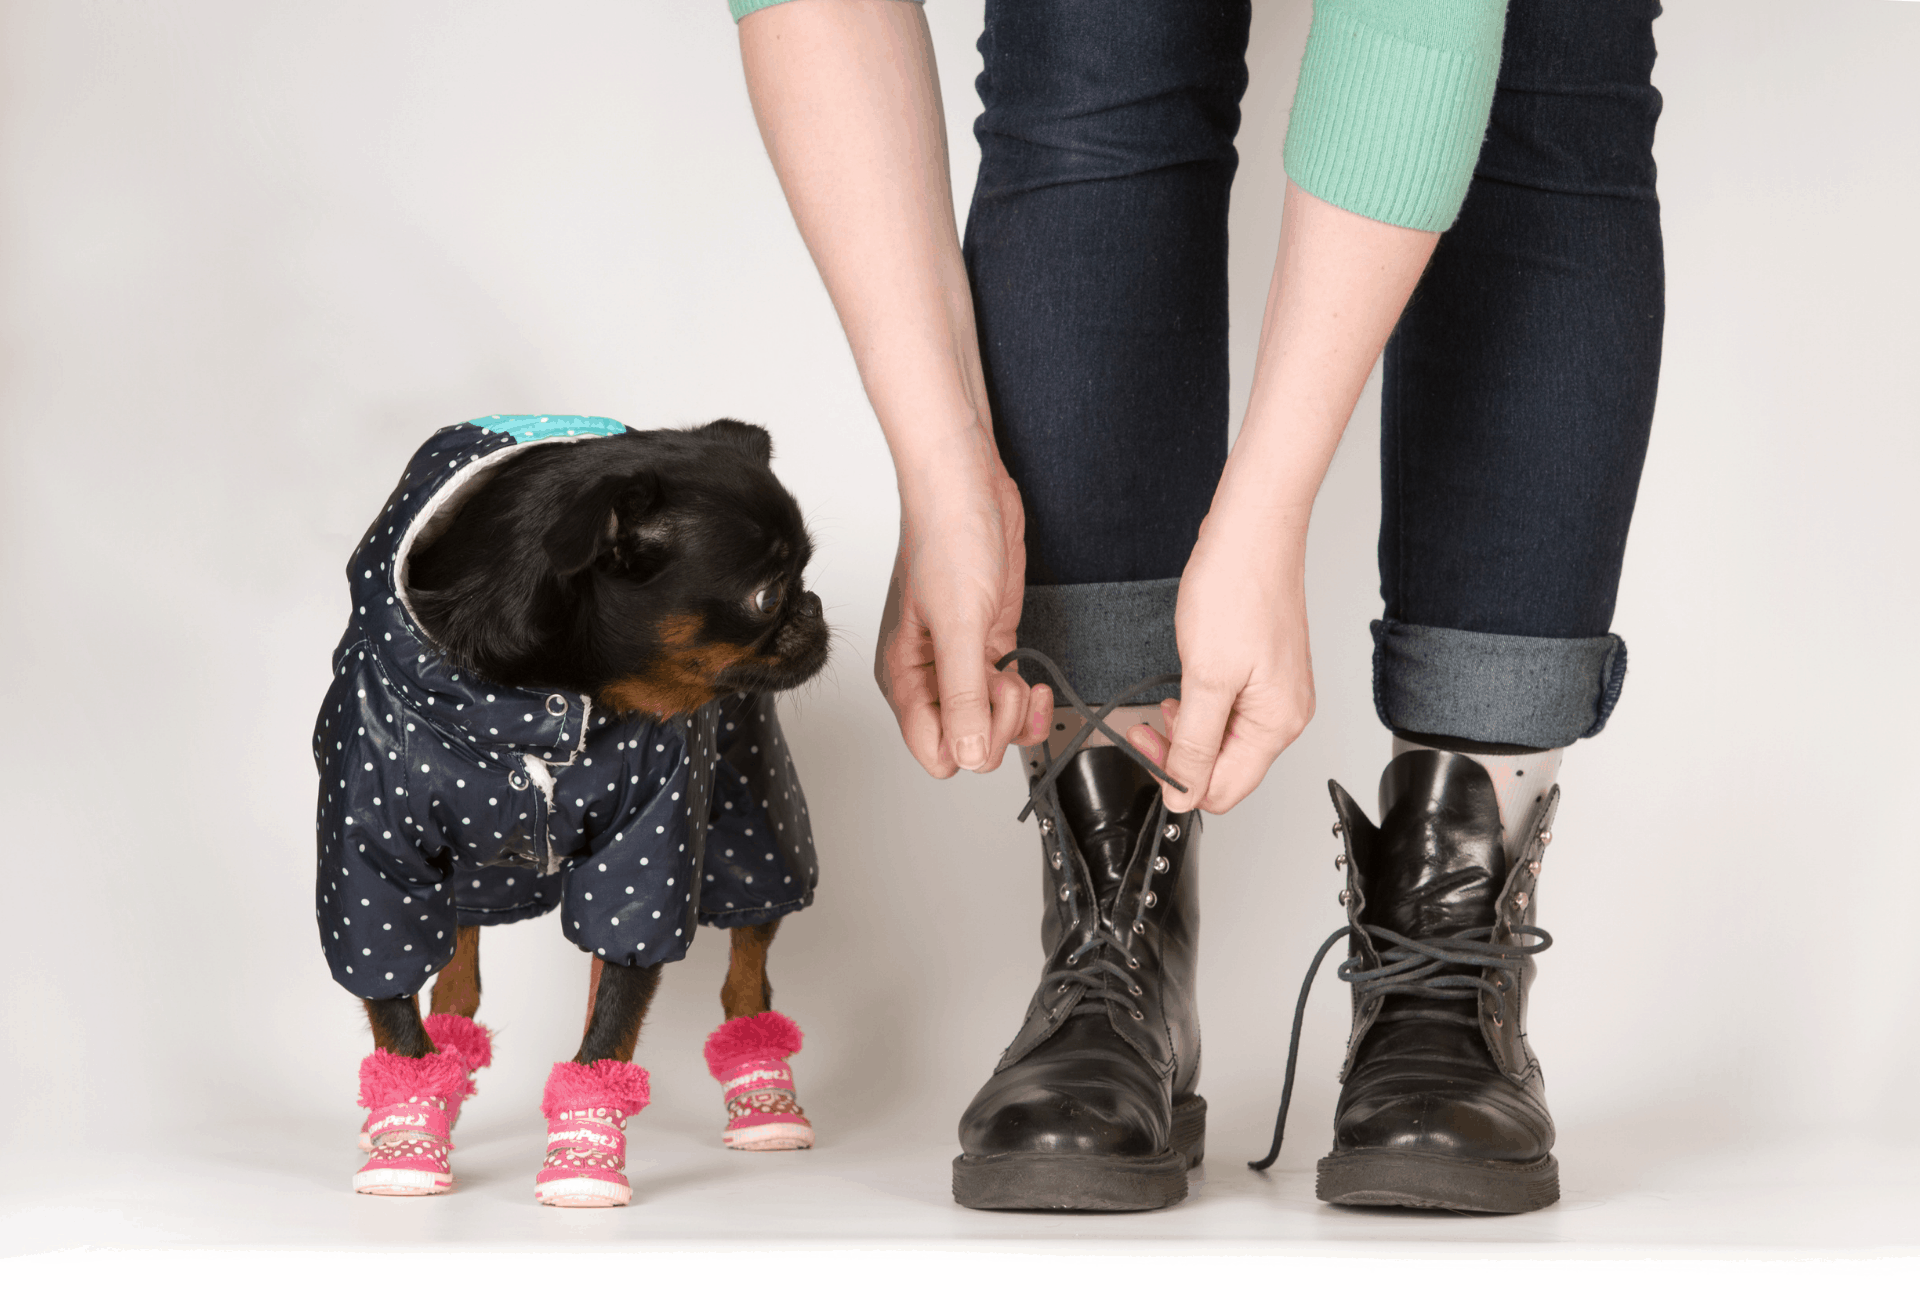 Pug and owner wearing boots